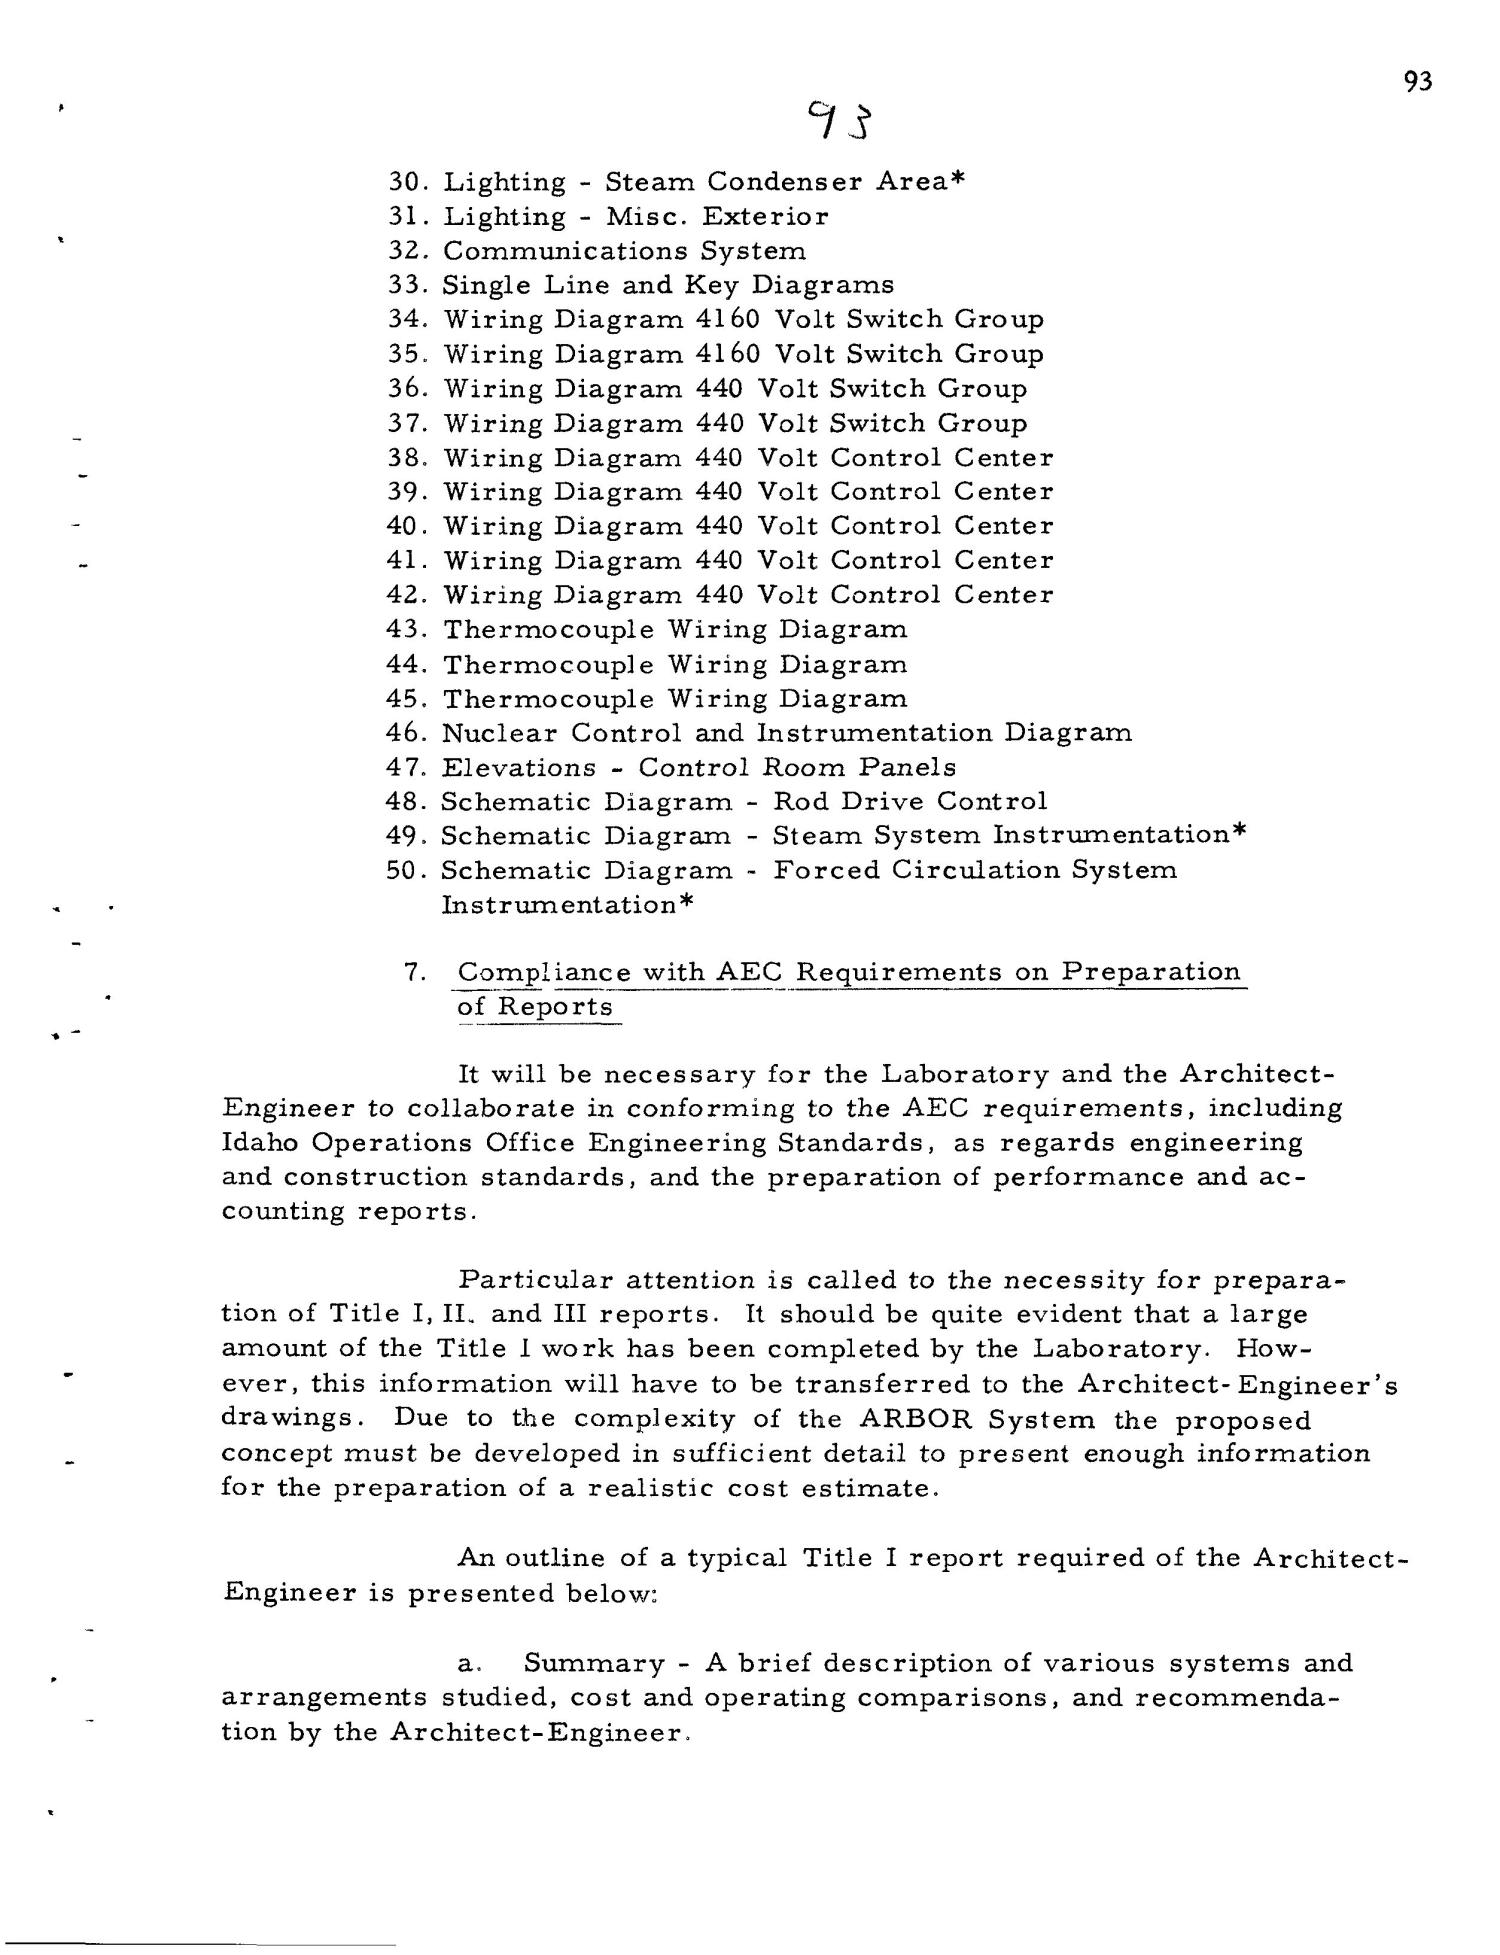 PRELIMINARY DESIGN REQUIREMENTS ARGONNE BOILING REACTOR (ARBOR) FACILITY. Revision I                                                                                                      [Sequence #]: 95 of 161